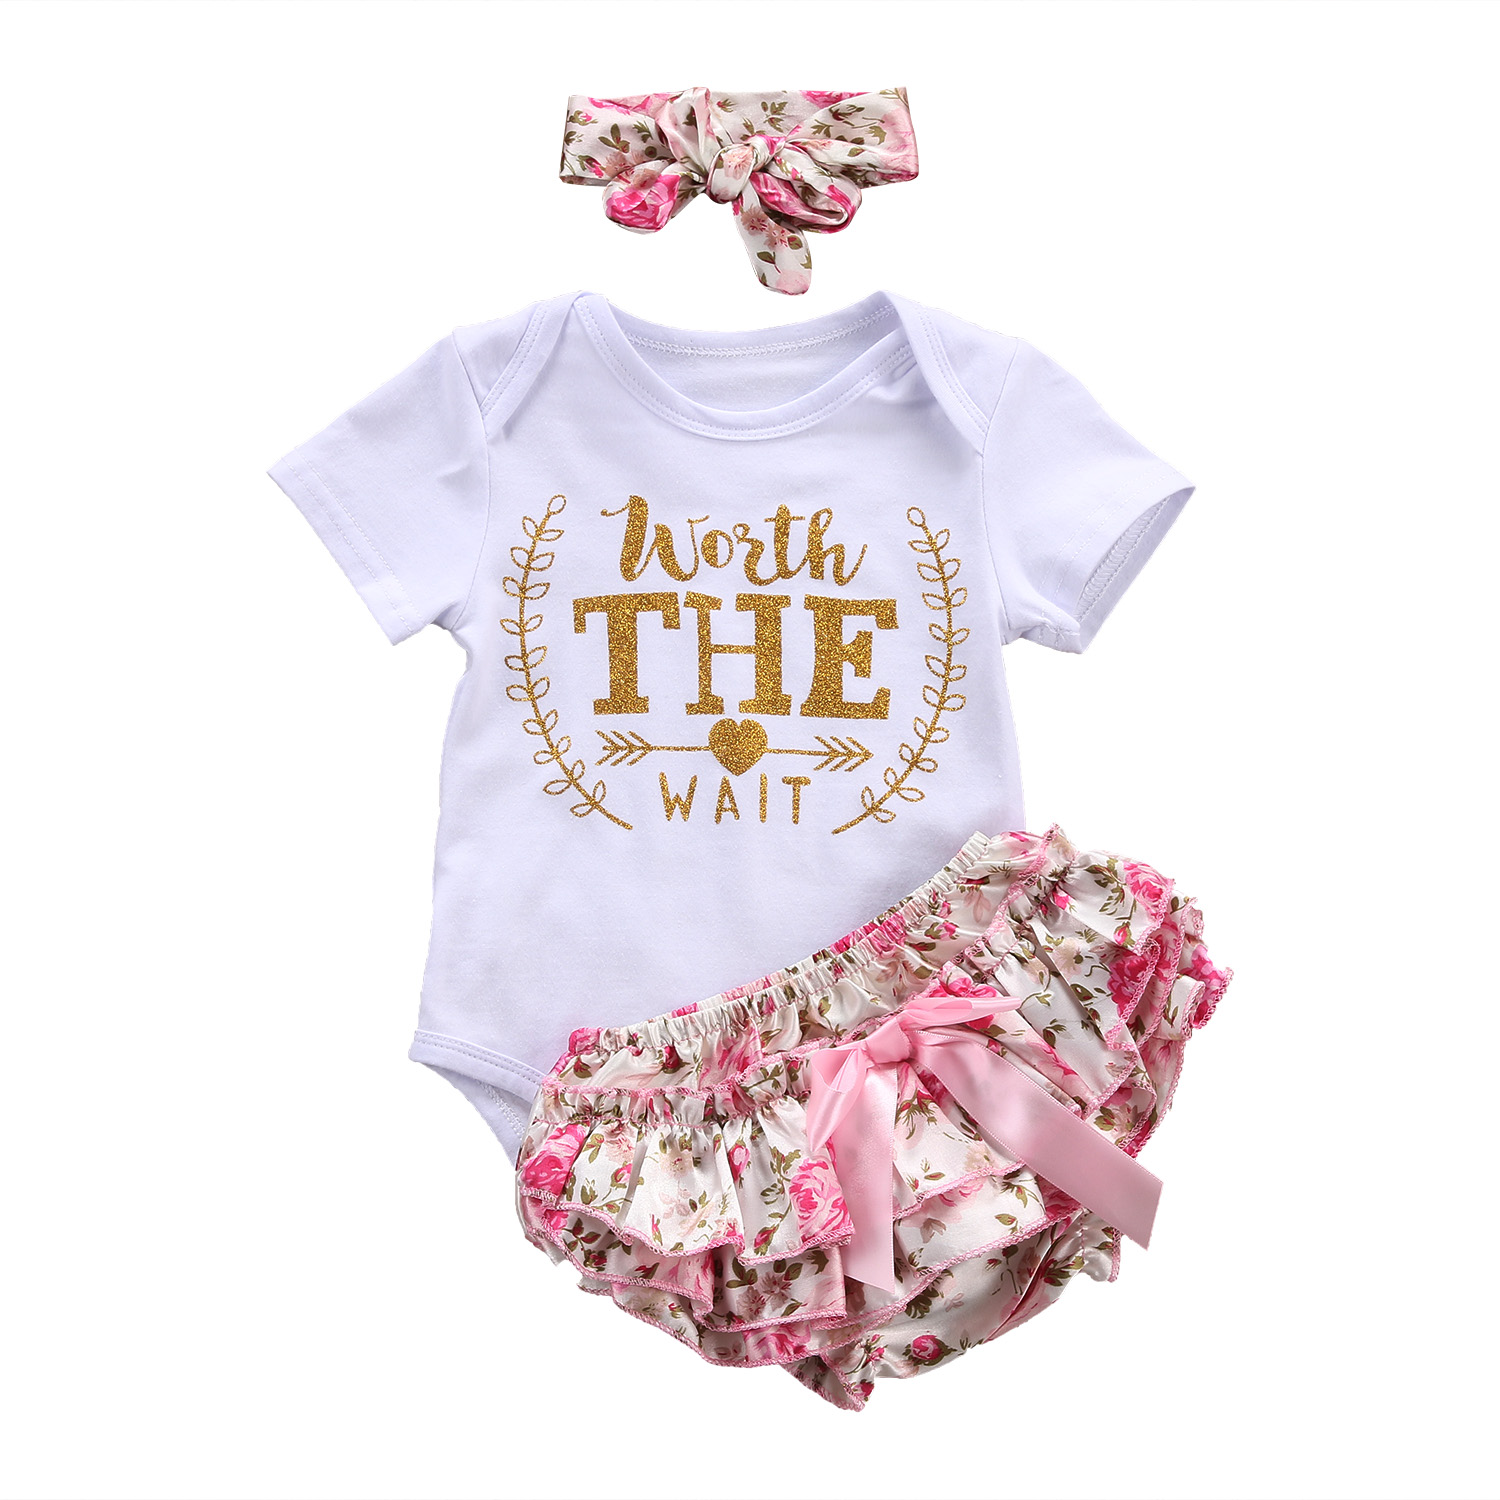 3Pcs/Lot Newborn Infant Baby Girls Clothing Sets Cotton Letter Print Summer Romper+Floral Shorts+Headband Baby Sets Girl Clothes